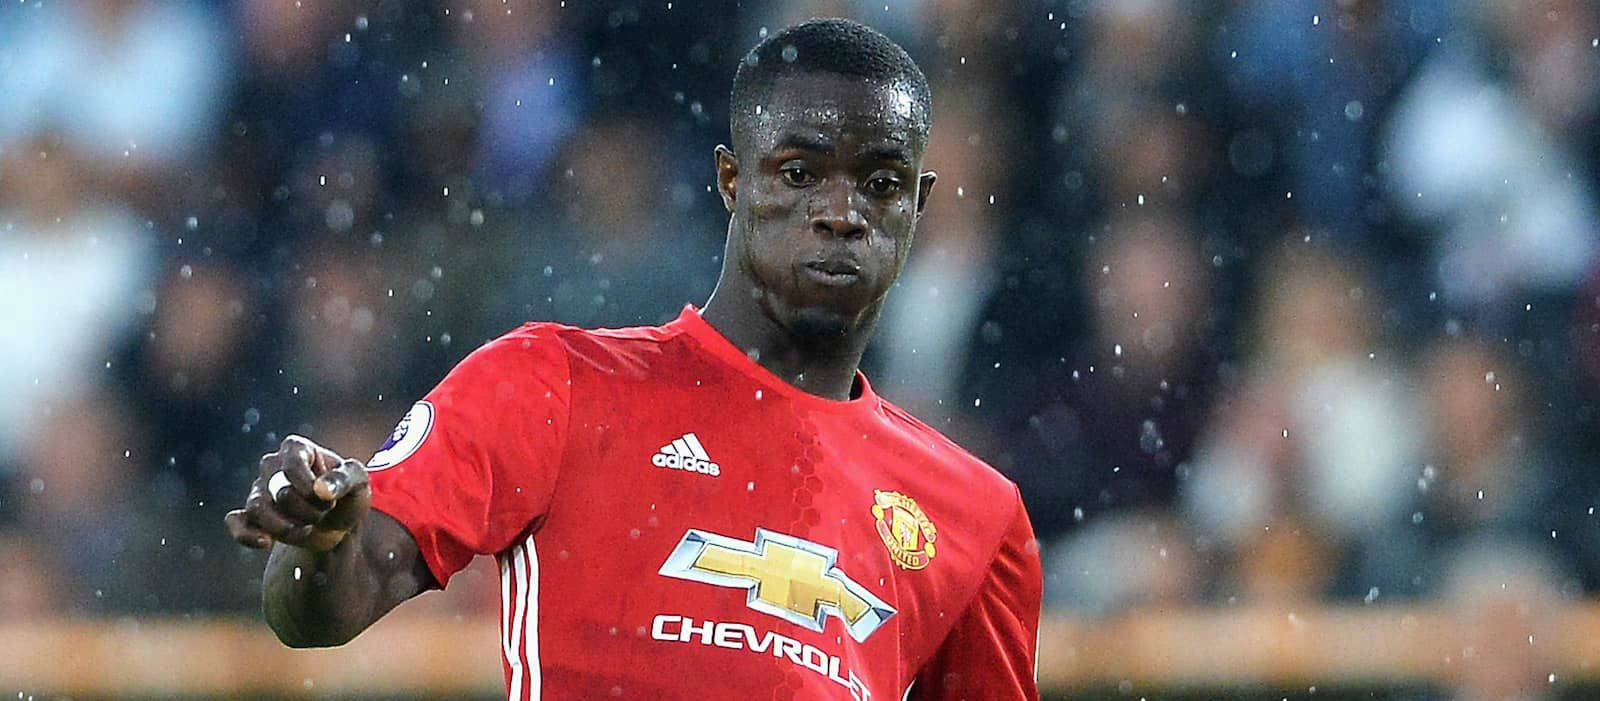 #ManchesterUnited defender #EricBailly was shot down inside the Stoke #penaltybox after completely missing the ball. RIP. #ManU #soccerfail #soccer